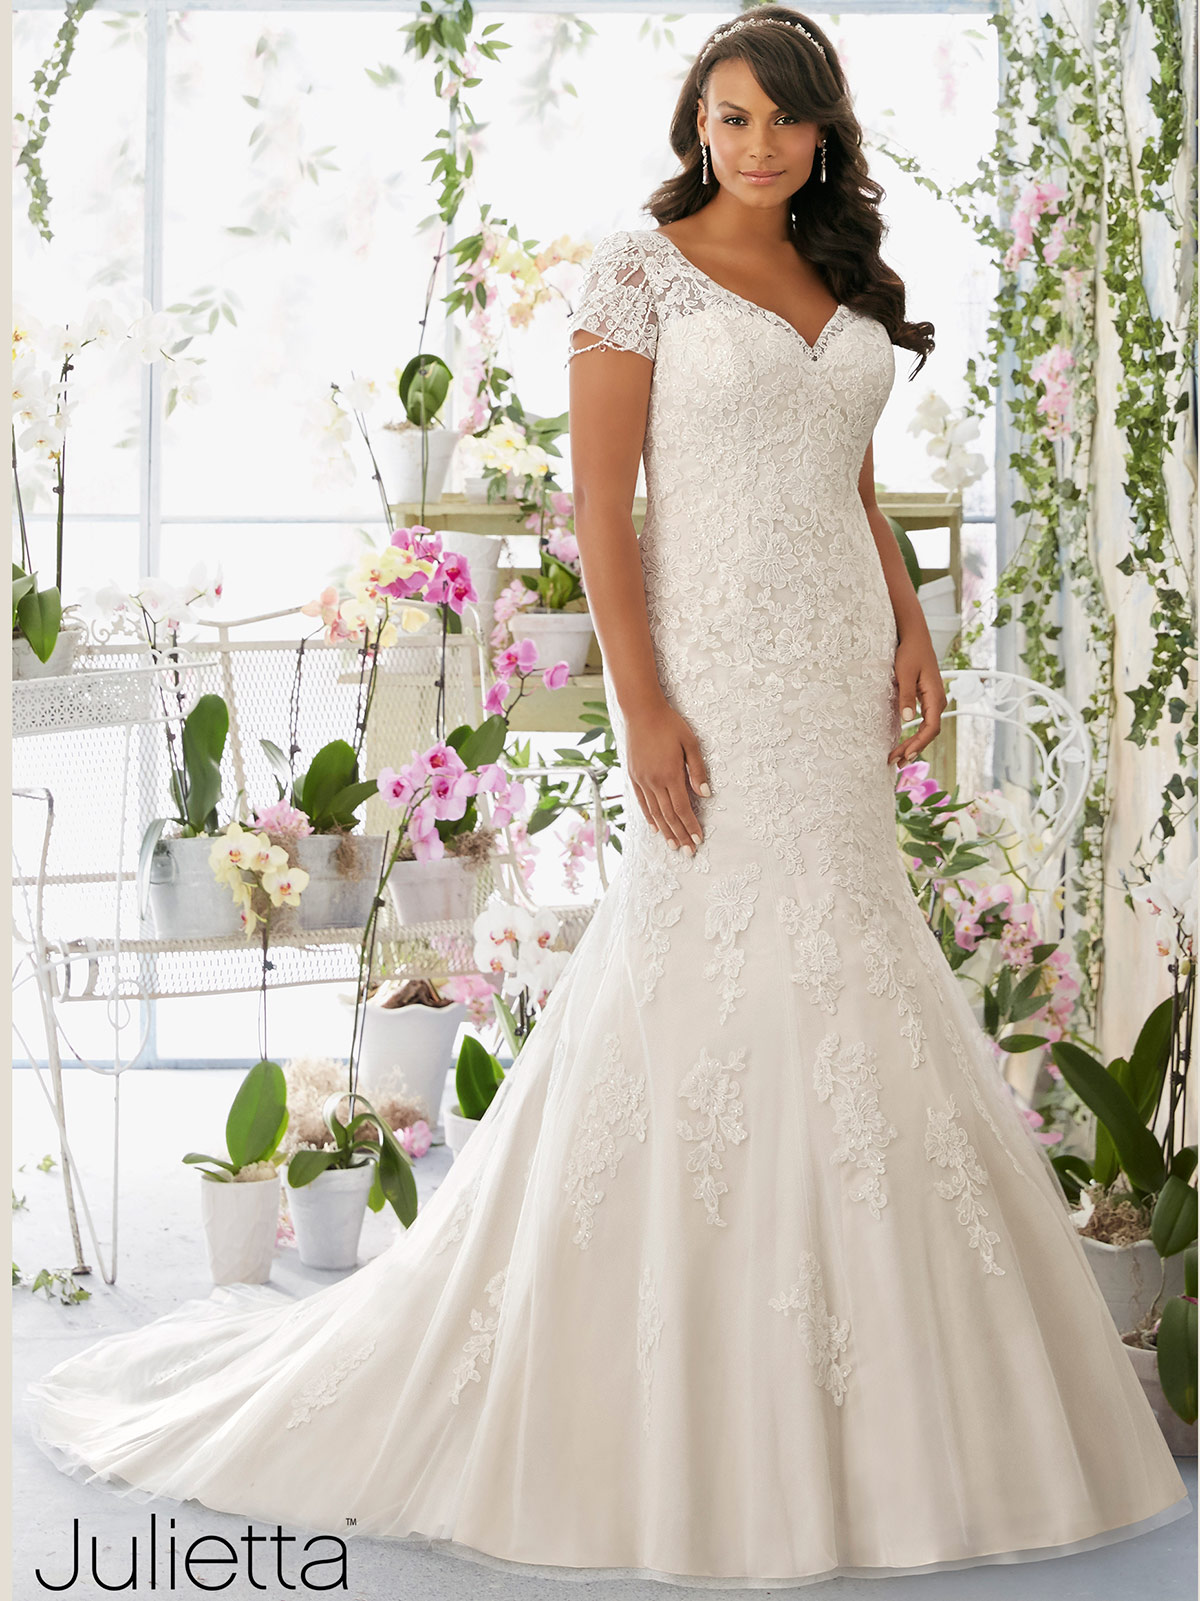 Mori lee julietta 3197 v neck mermaid bridal dress for Plus size mermaid wedding dresses with sleeves